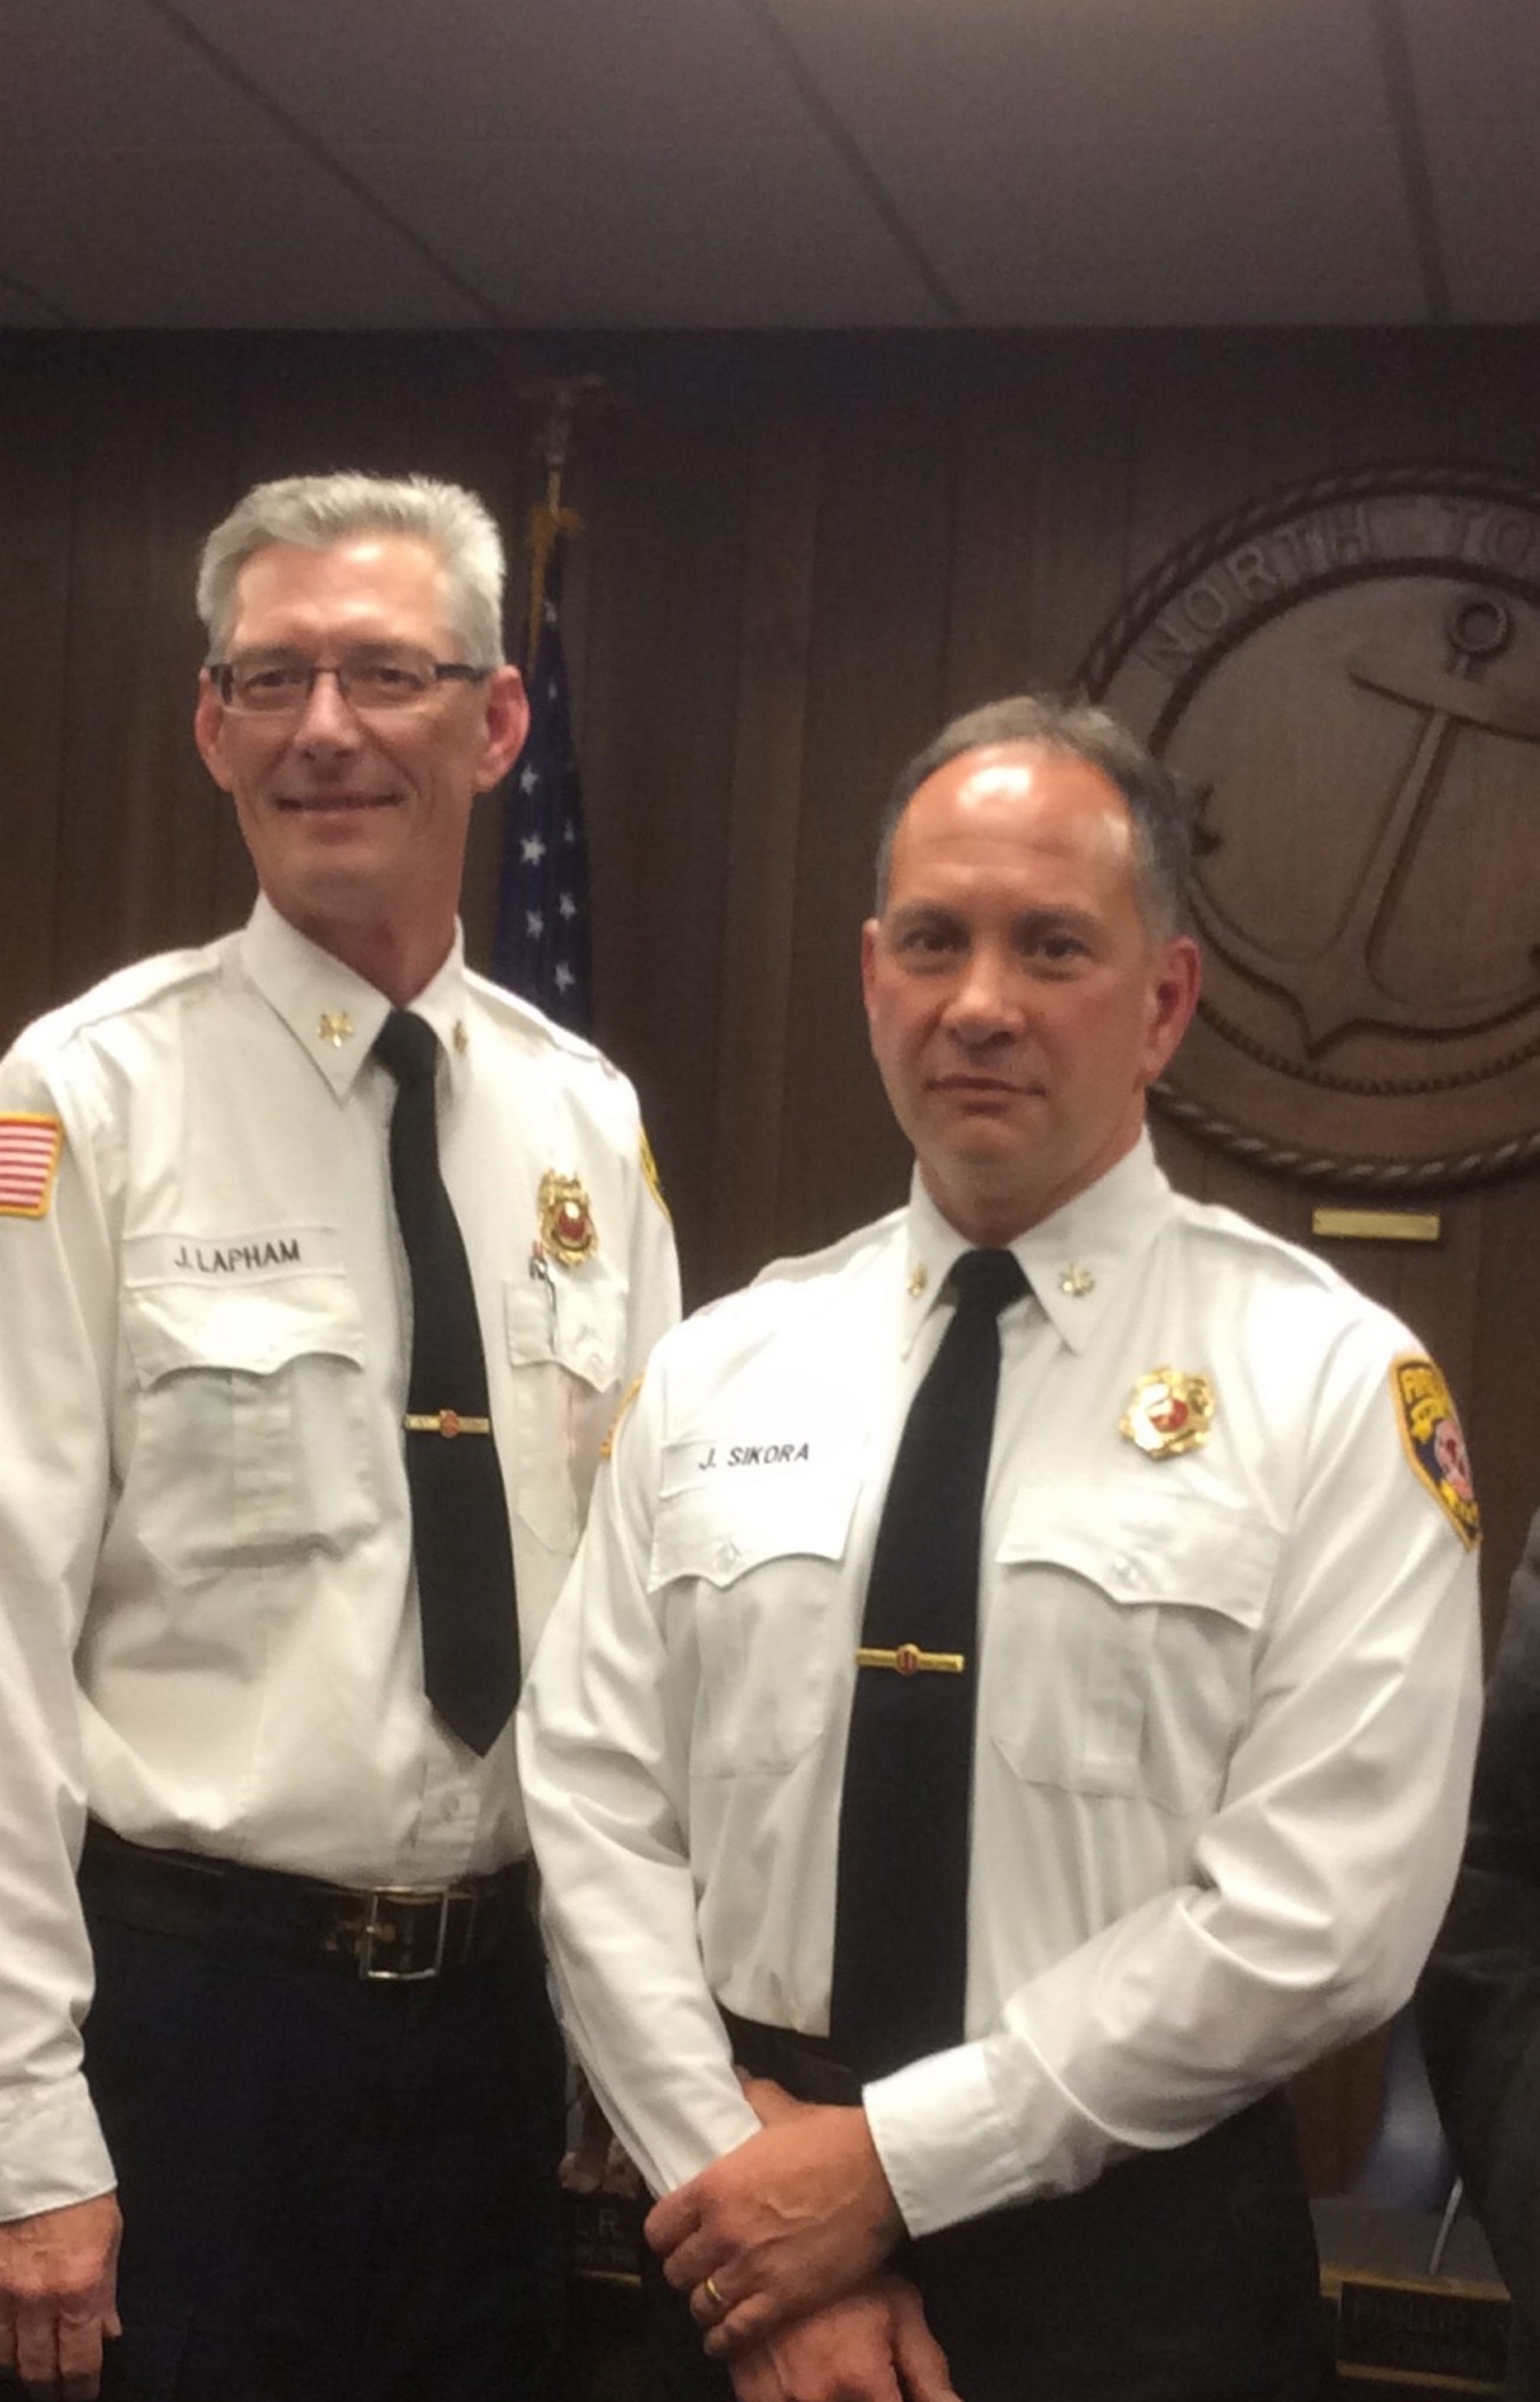 Joseph Sikora, right, was named North Tonawanda Fire Chief, taking over for Chief John C. Lapham who will retire on Thursday.